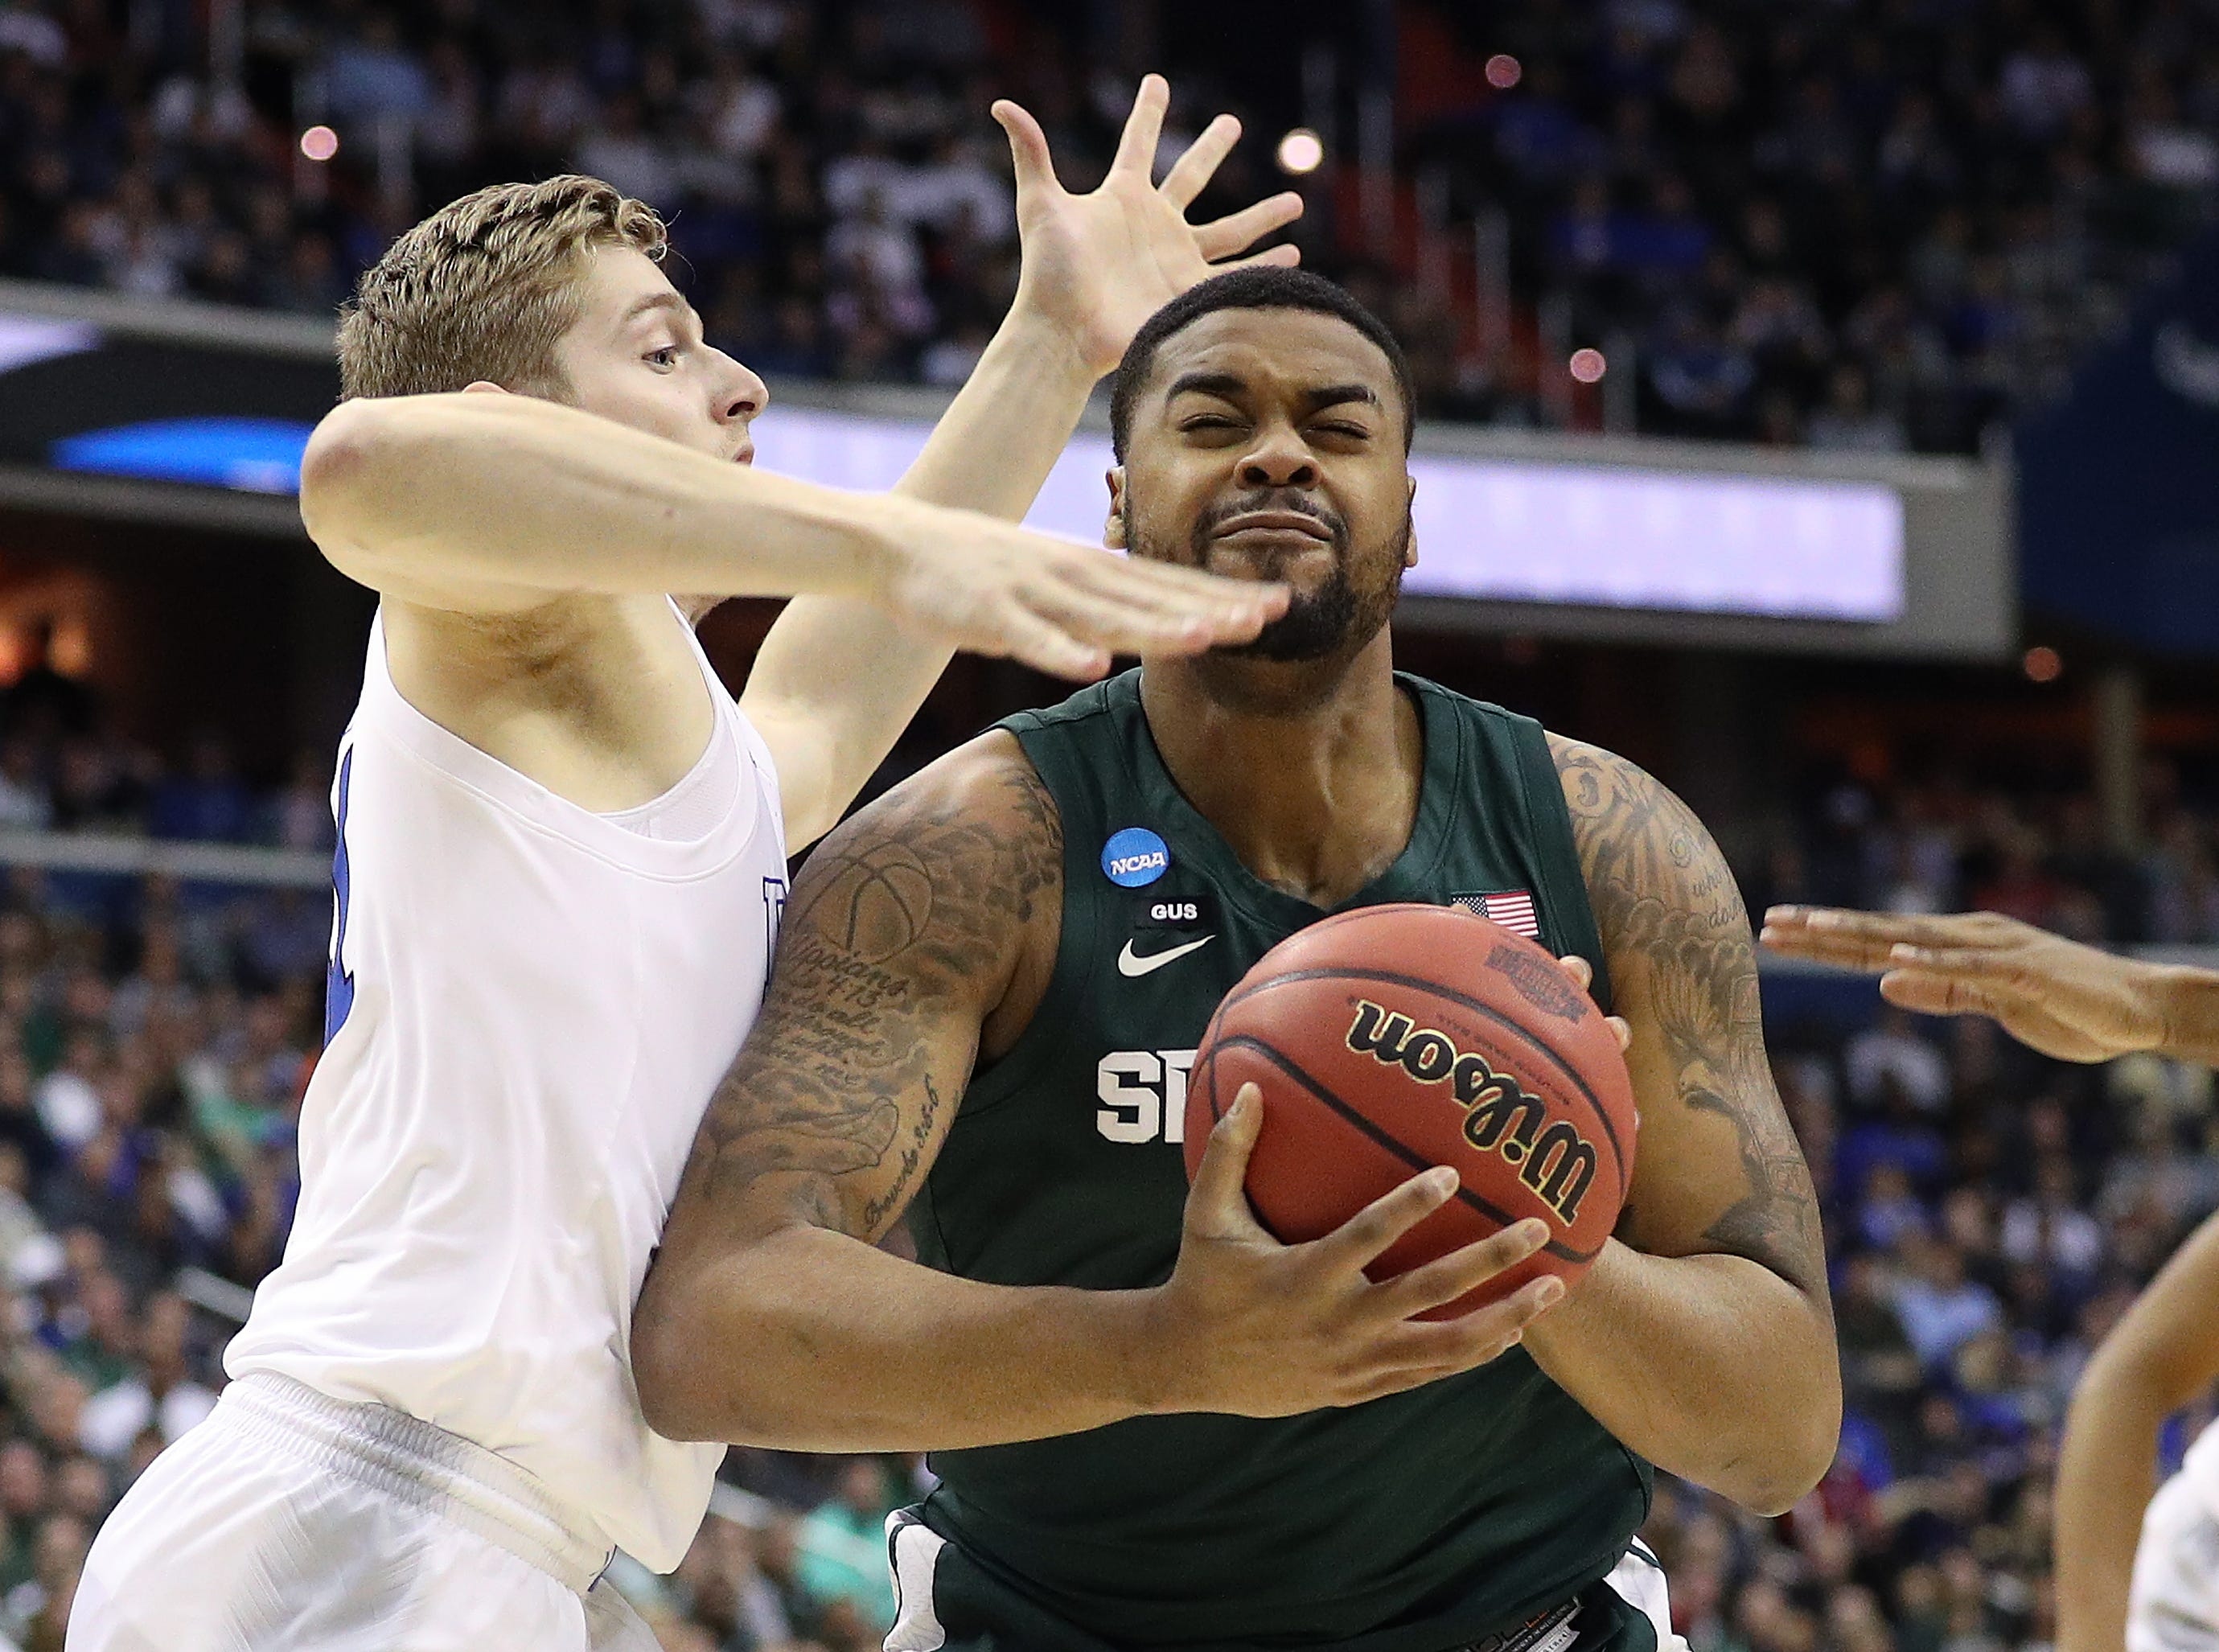 Nick Ward #44 of the Michigan State Spartans attempts a shot against Jack White #41 of the Duke Blue Devils during the first half in the East Regional game of the 2019 NCAA Men's Basketball Tournament at Capital One Arena on March 31, 2019 in Washington, DC.